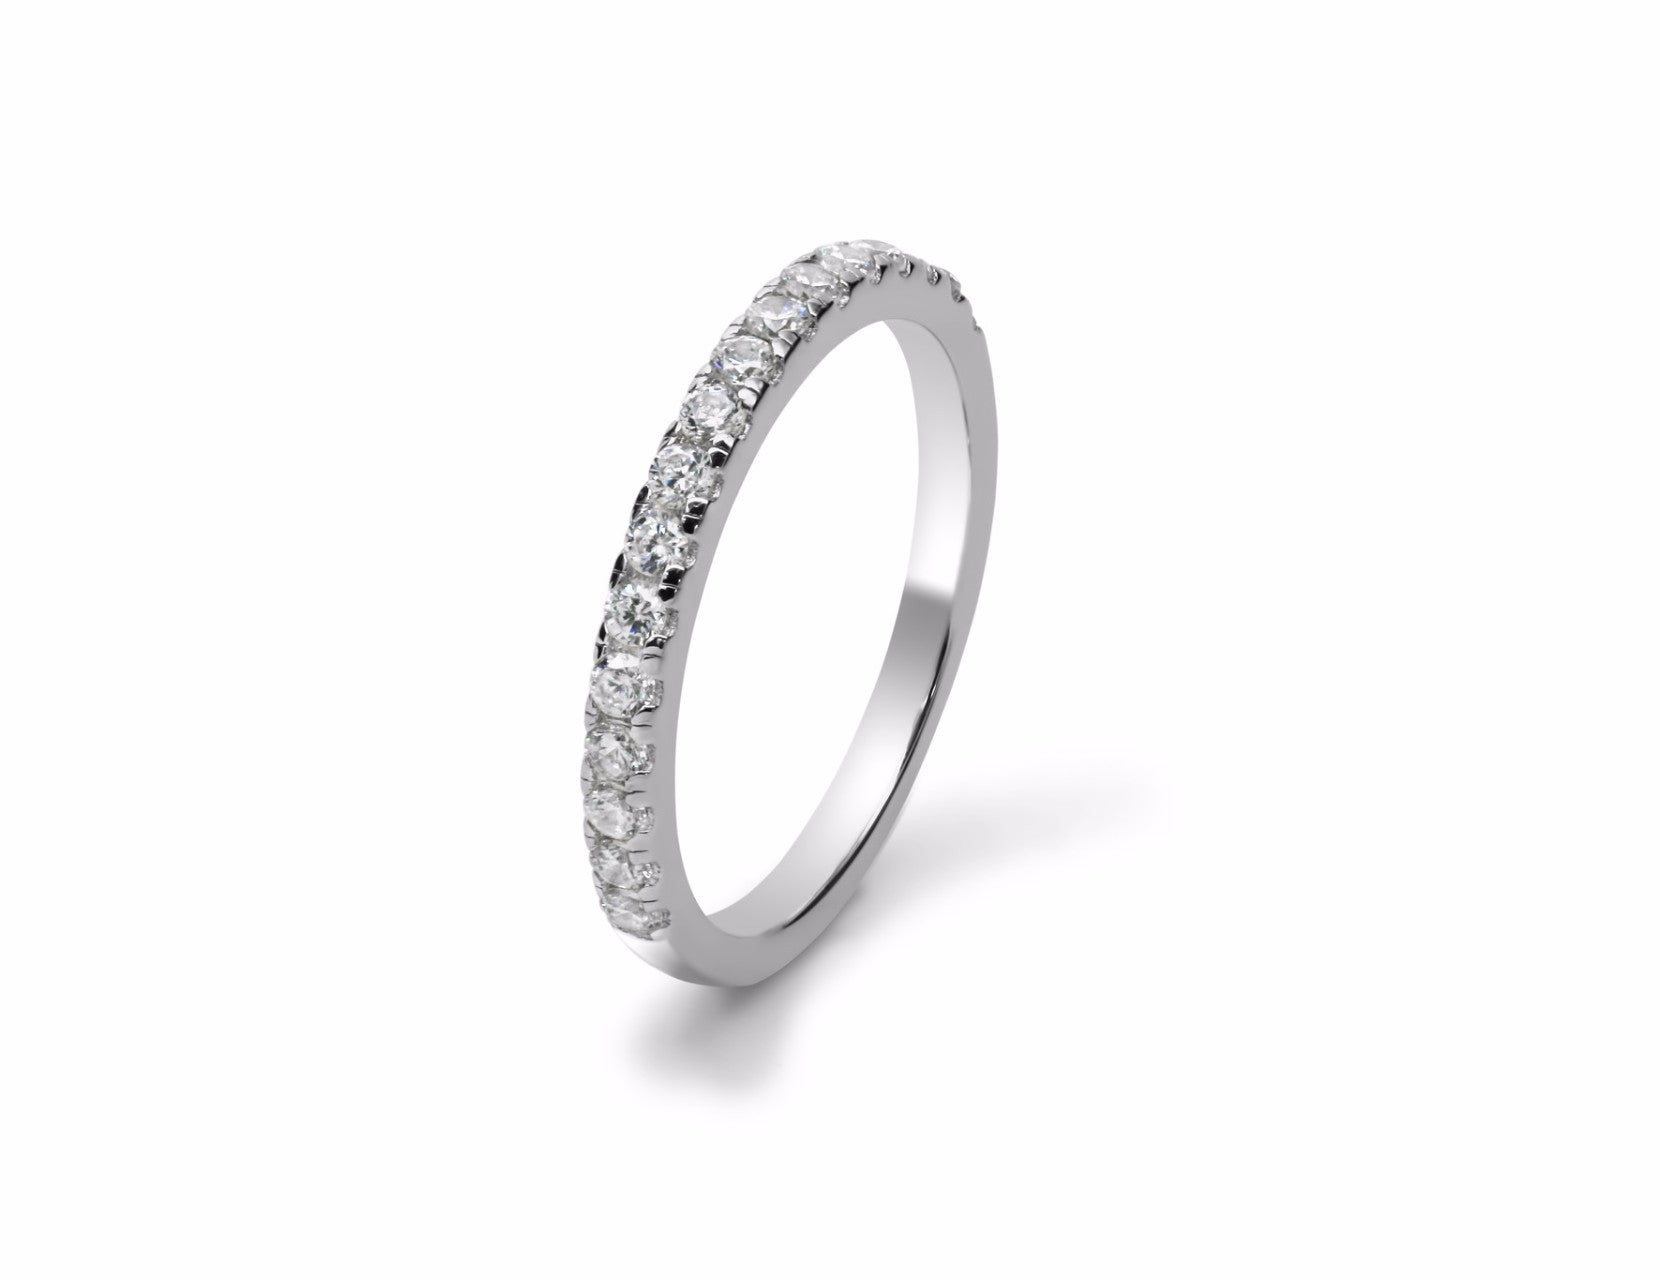 Nova Set Diamond Wedding Ring